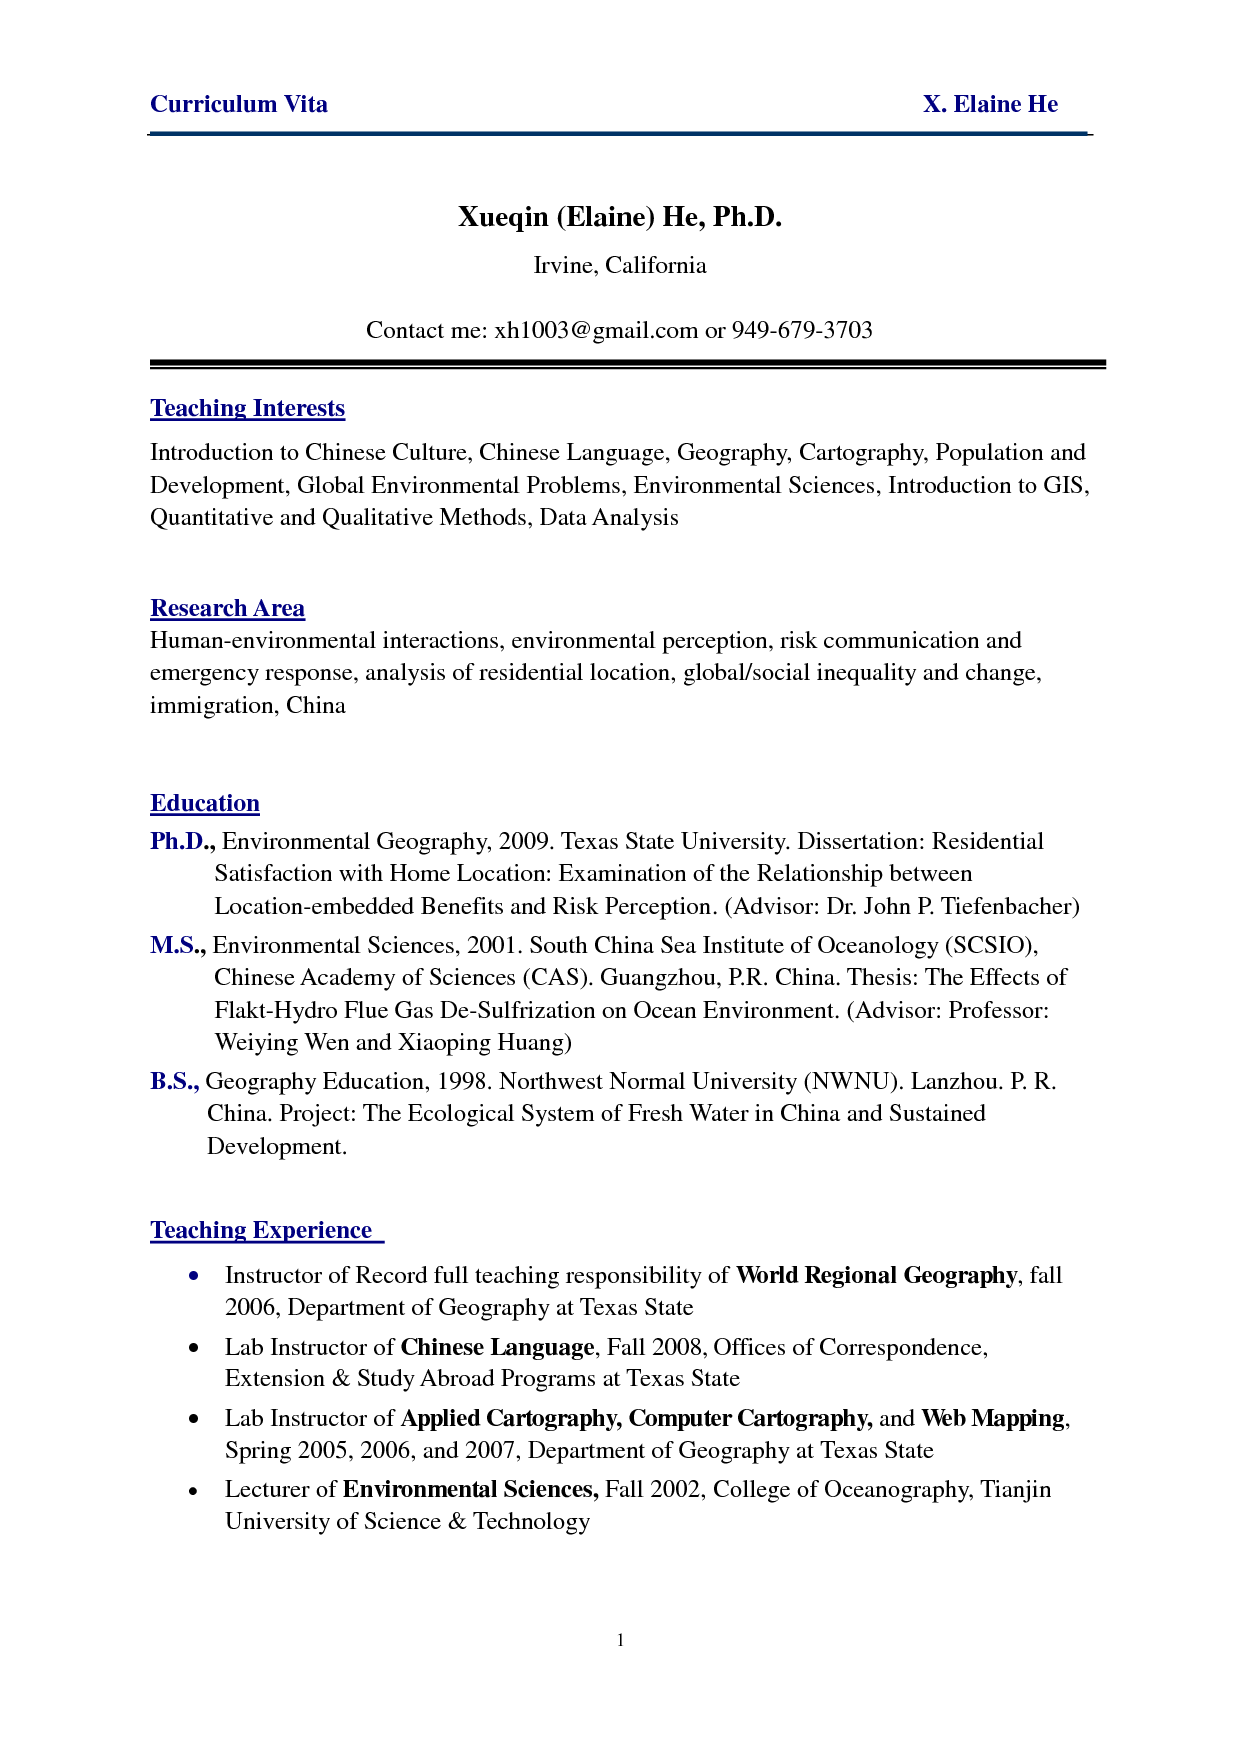 New Grad LPN Resume Sample Nursing HACKED Pinterest - Scrub Nurse Cover Letter